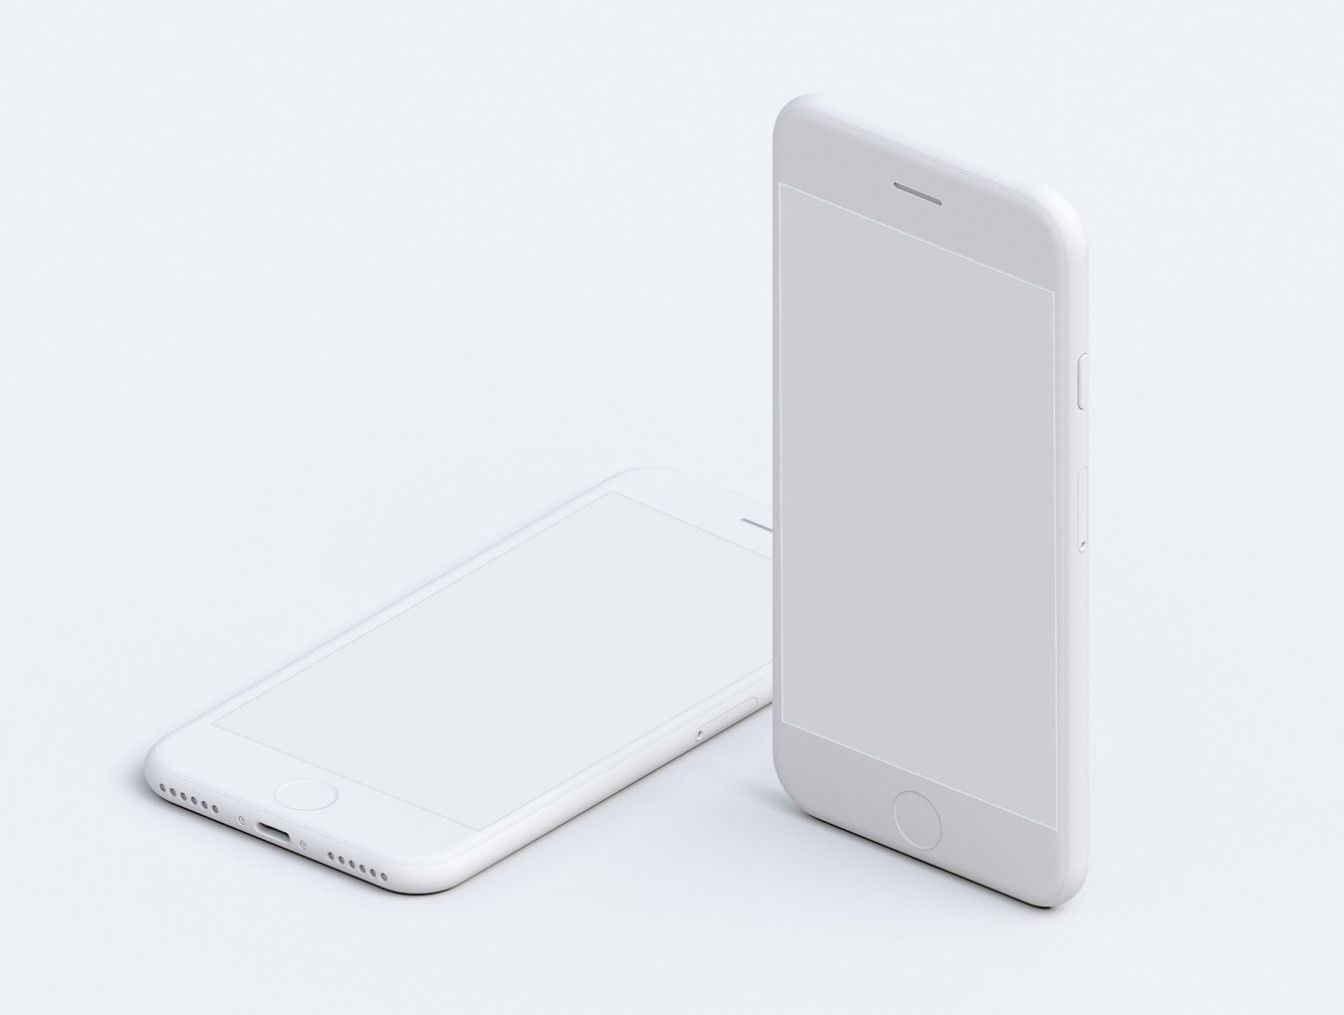 9 Free Psd Hi Res Iphone Mockups Simply Put Simple Mockups Is A Stunning Set Of 9 4k Resolution Iphone Mockups Give Iphone Mockup Mobile Mockup Mockup Design